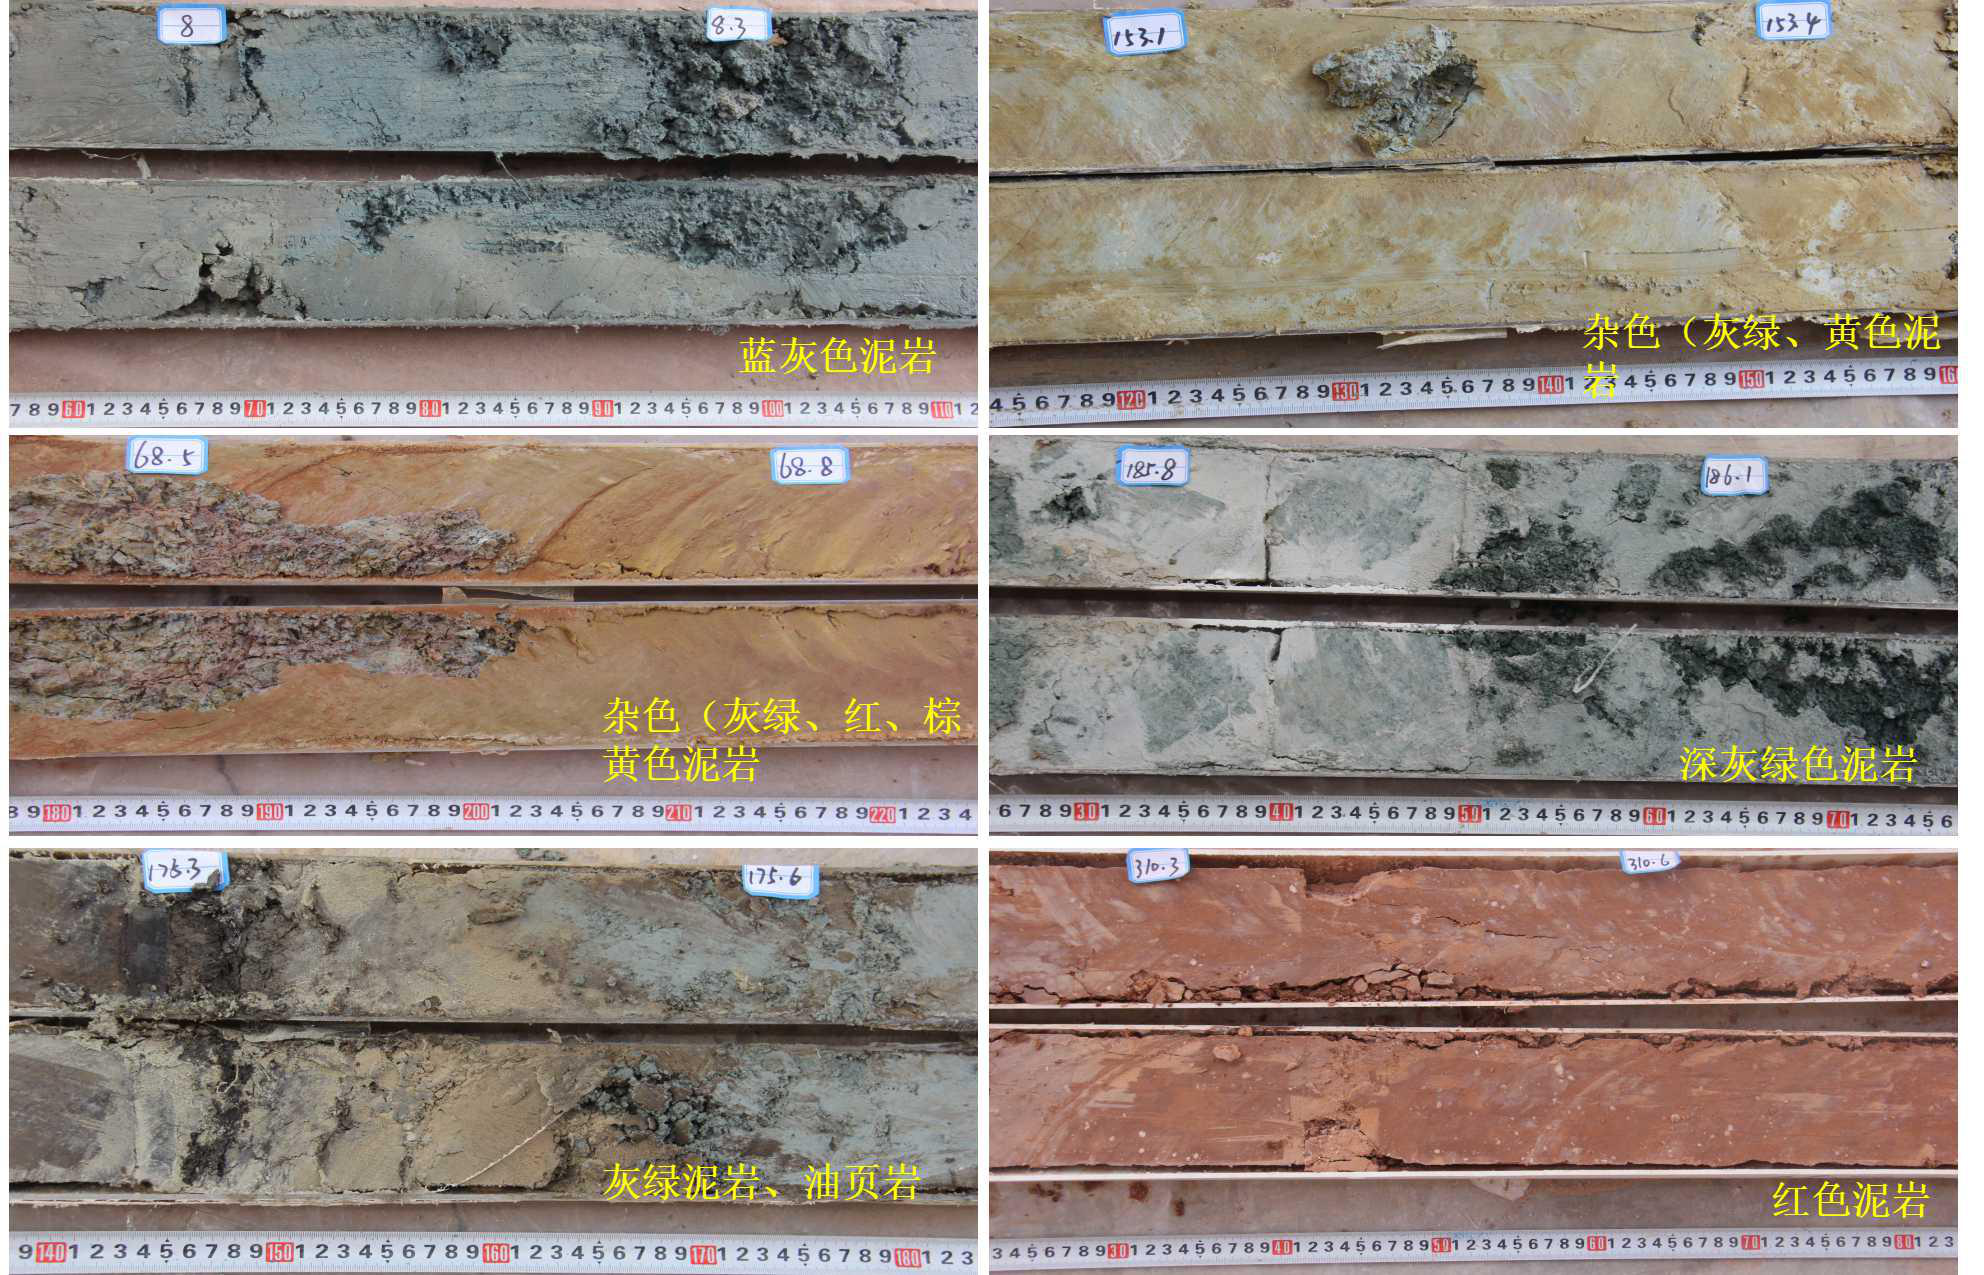 Lithology description of a 300m-thick Oligocene borehole strata in the Qujing area, Yunnan